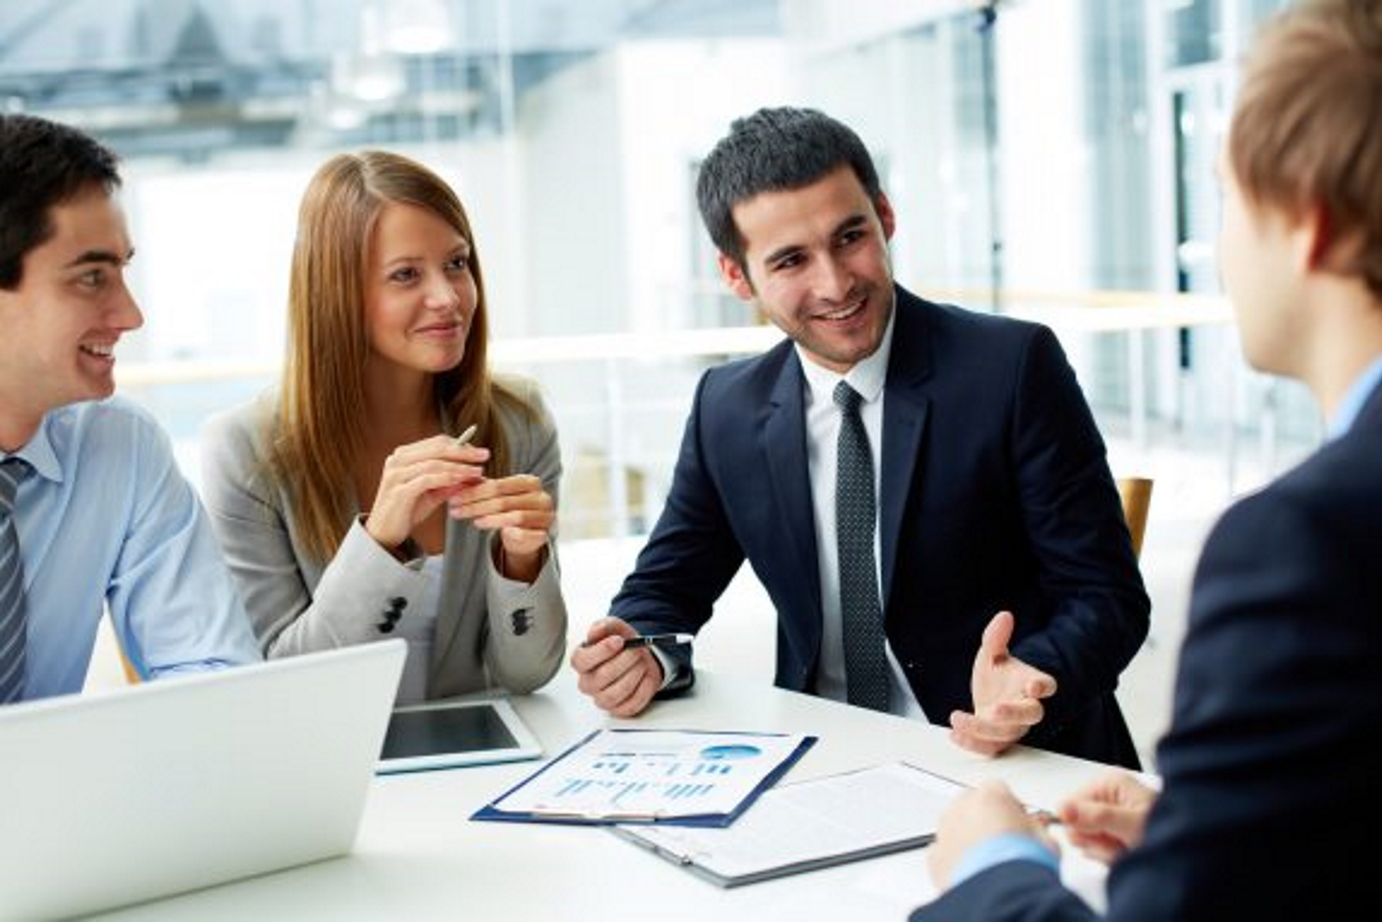 corporate training experts